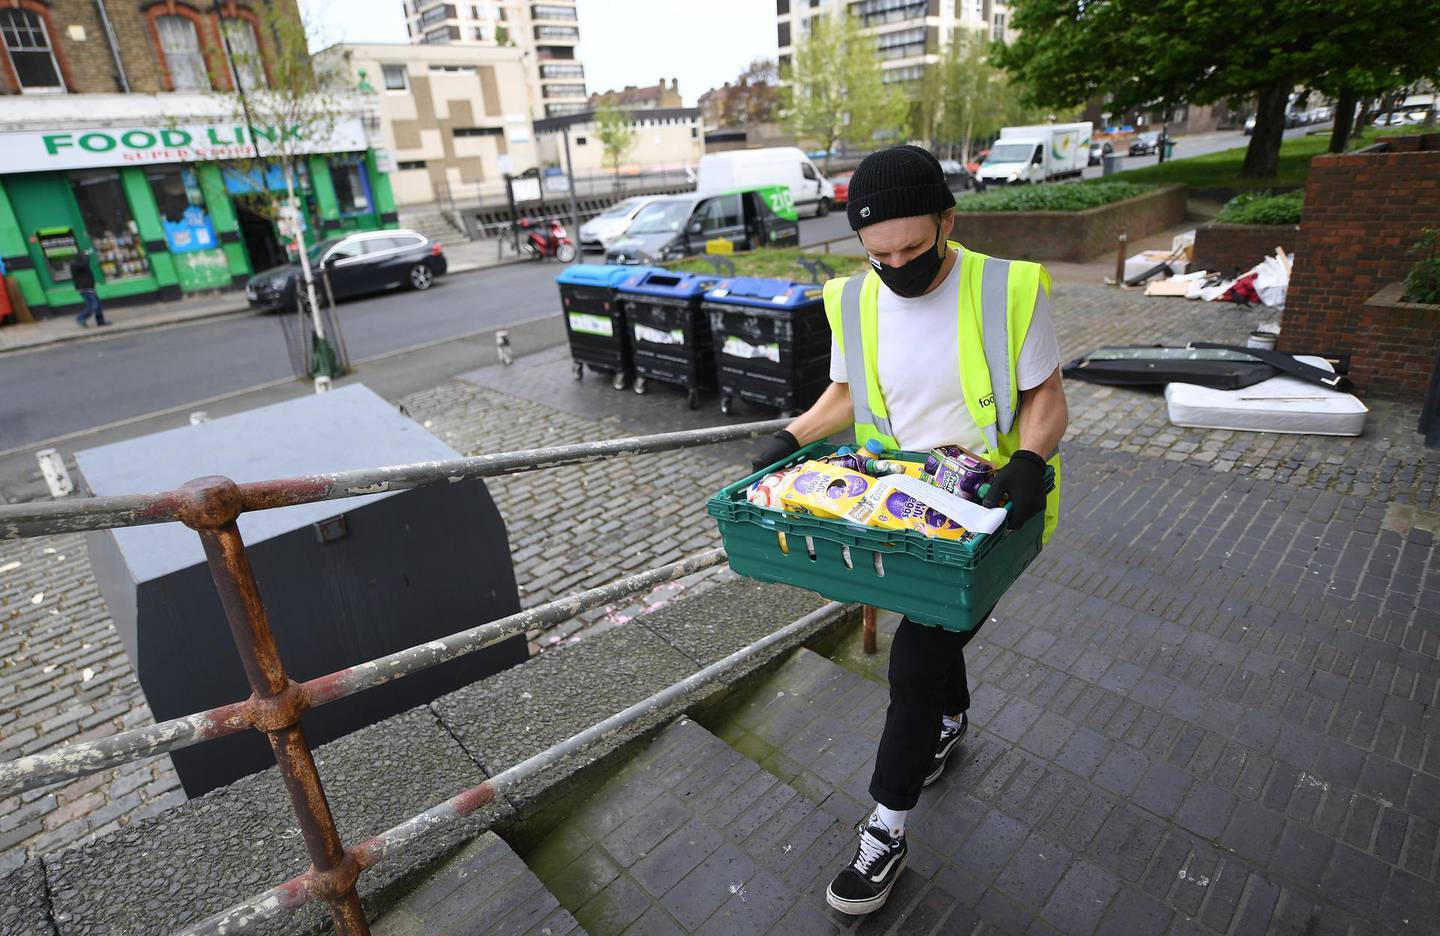 epa08369324 An emergency food is delivered to a family at a block of flats in London, Britain, 17 April 2020. Foodbanks have become an essential front-line service in the fight against Coronavirus. With untold numbers of people loosing their jobs and waiting for payments from Universal Credit emergency food deliveries are helping families and the vulnerable get through difficult times. The British government has announced a further three week lockdown due to the Coronavirus pandemic. Countries around the world are taking increased measures to stem the widespread of the SARS-CoV-2 coronavirus which causes the COVID-19 disease.  EPA/ANDY RAIN